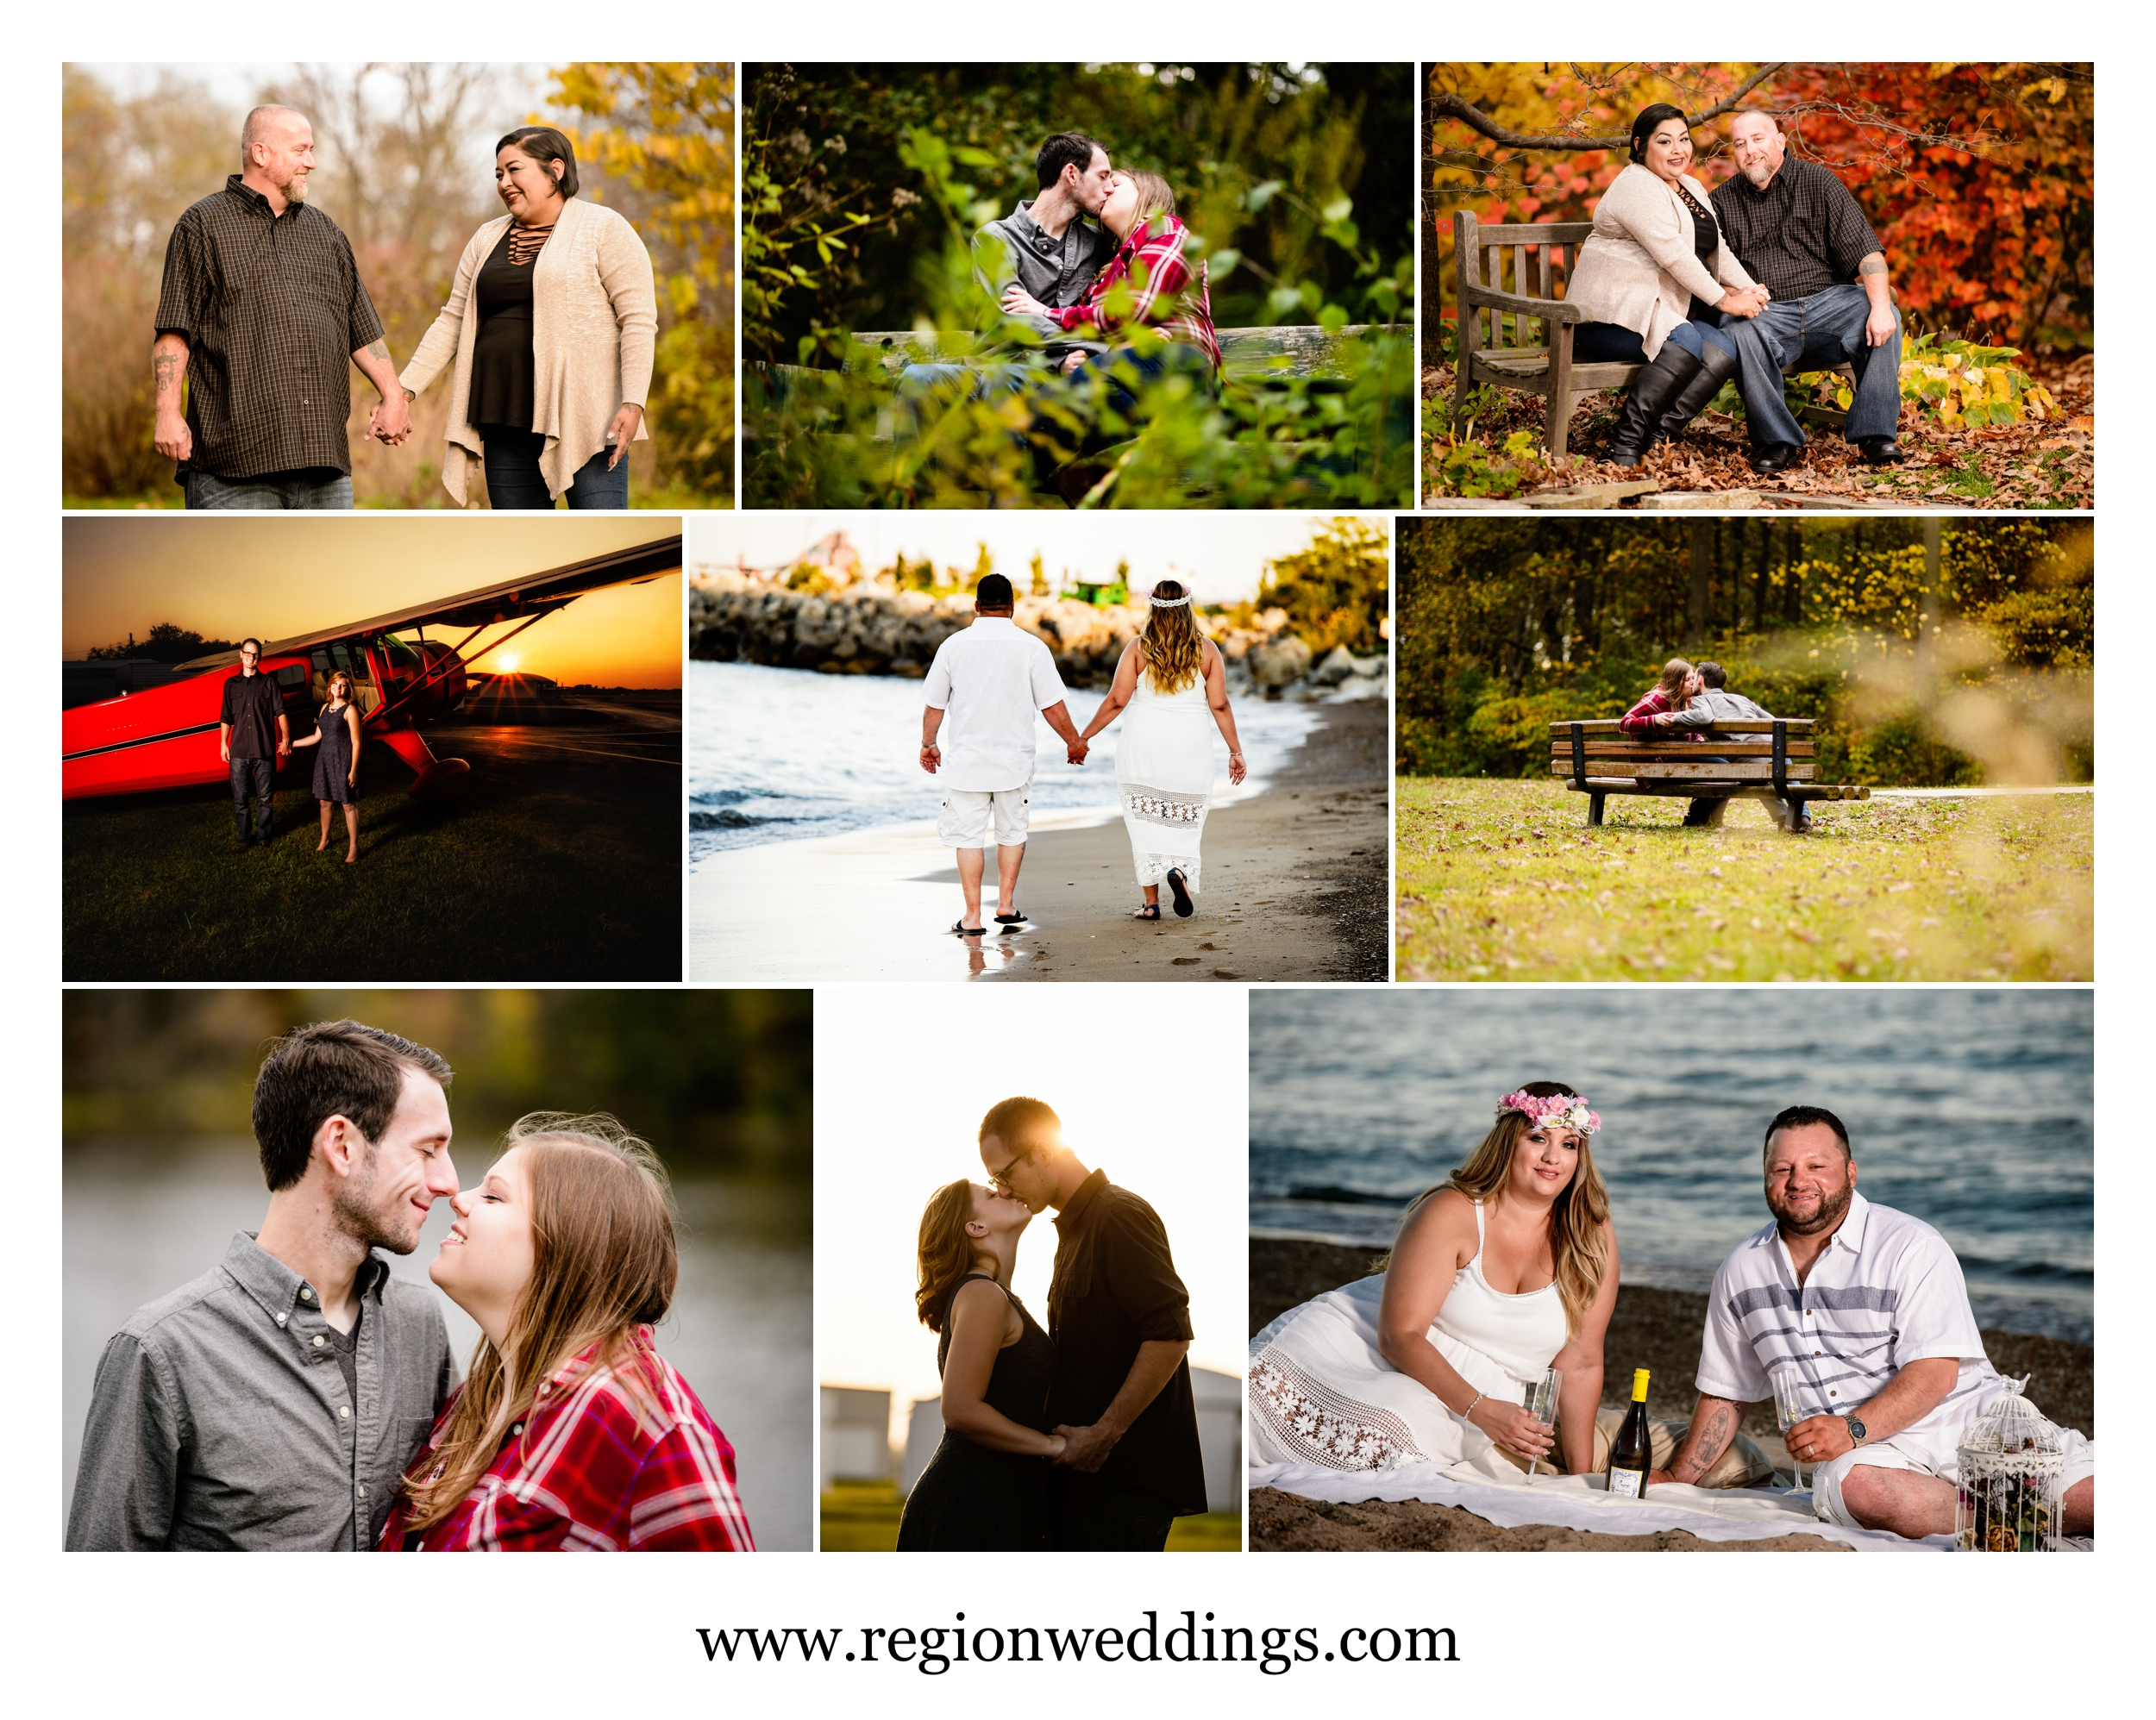 Engagement photos in Northwest Indiana in 2016.